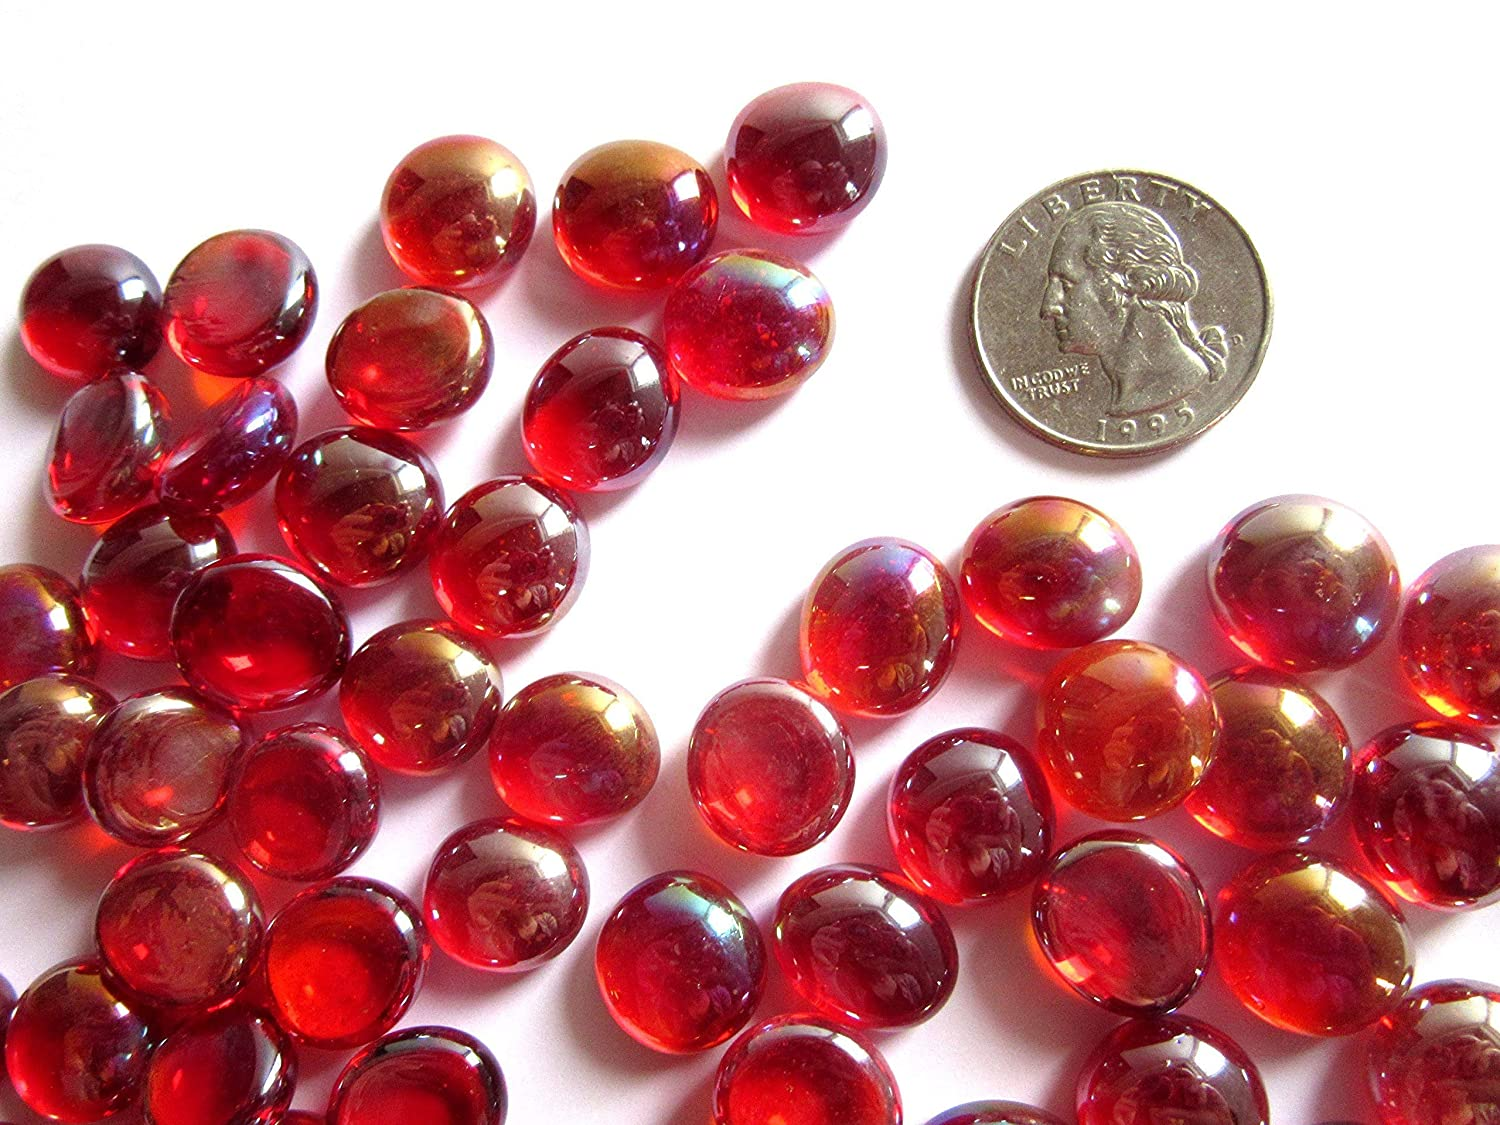 50 Mini Iridized Red Glass Gems, 11-14 mm Luster Flat Back Glass Marbles,Vase Fillers, Mosaic Tiles, Small